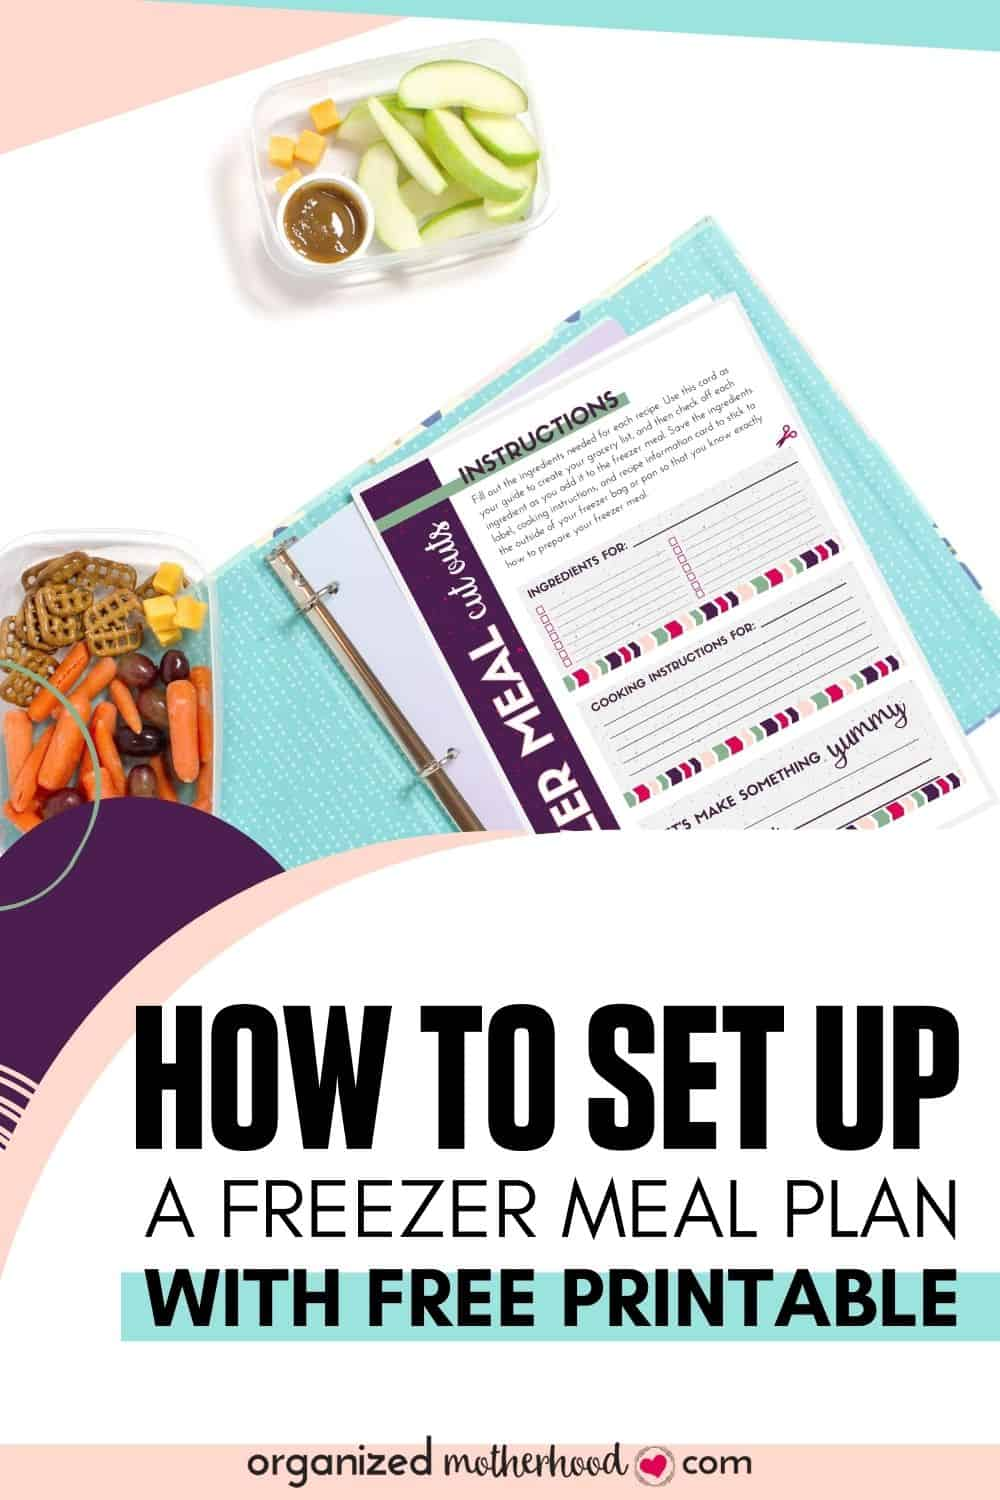 Printable freezer meal planning worksheet to create a meal plan out of freezer recipes.